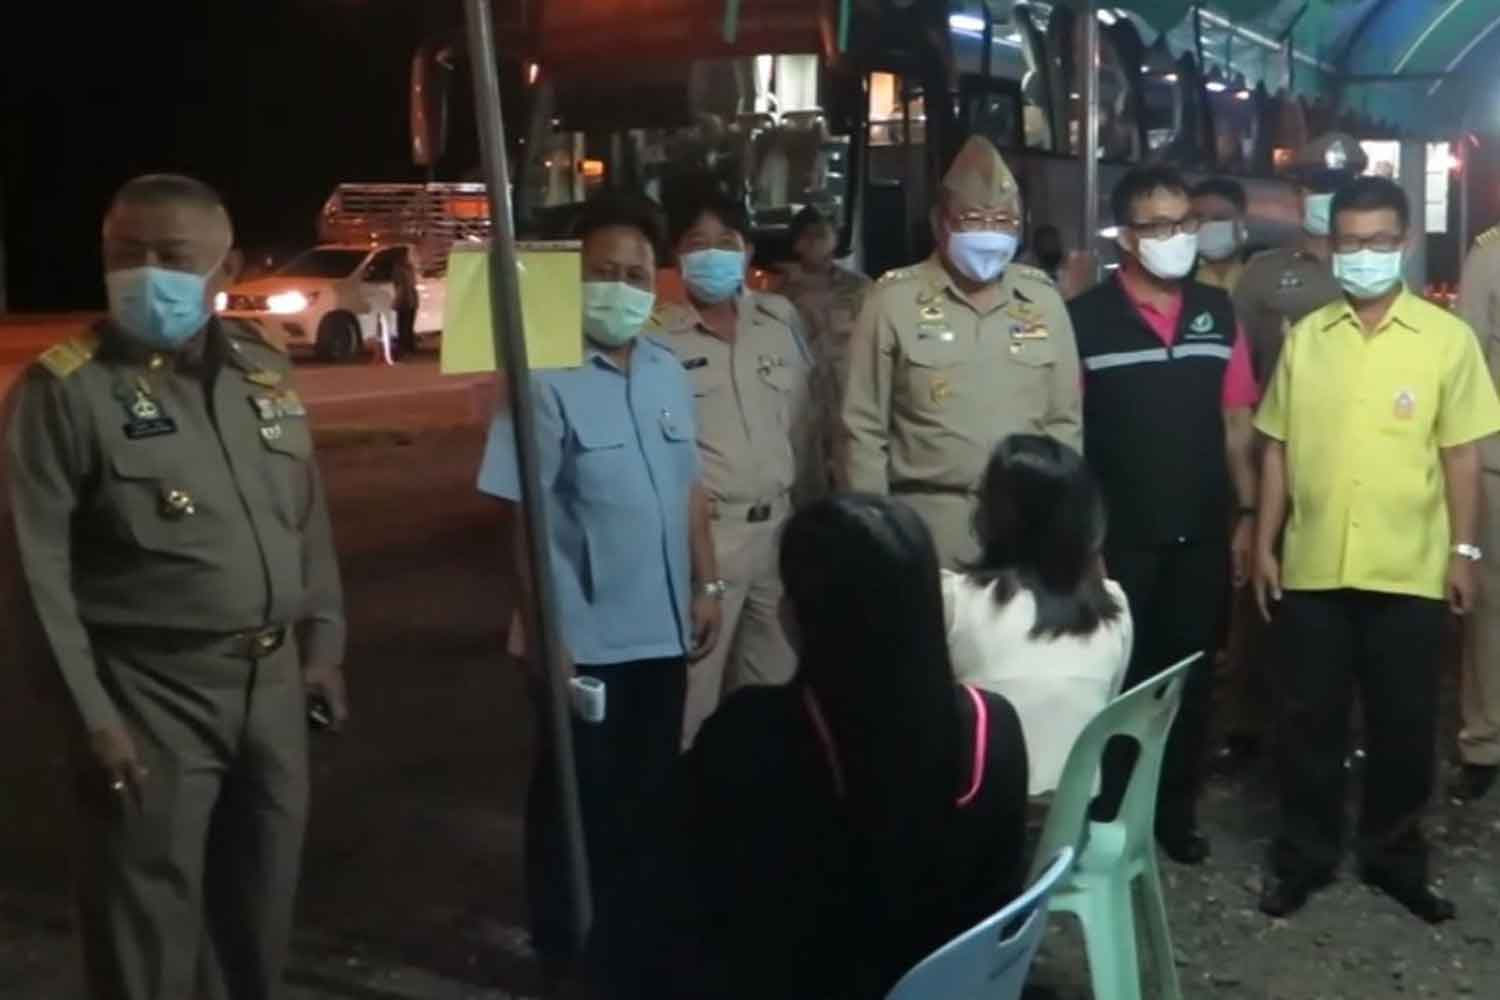 Chiang Mai governor Charoensit Sanguansat, standing third from right, visits a Covid-19 checkpoint on the road between Doi Saket and Chiang Mai on Tuesday morning. (Photo: Phanumet Tanraksa)